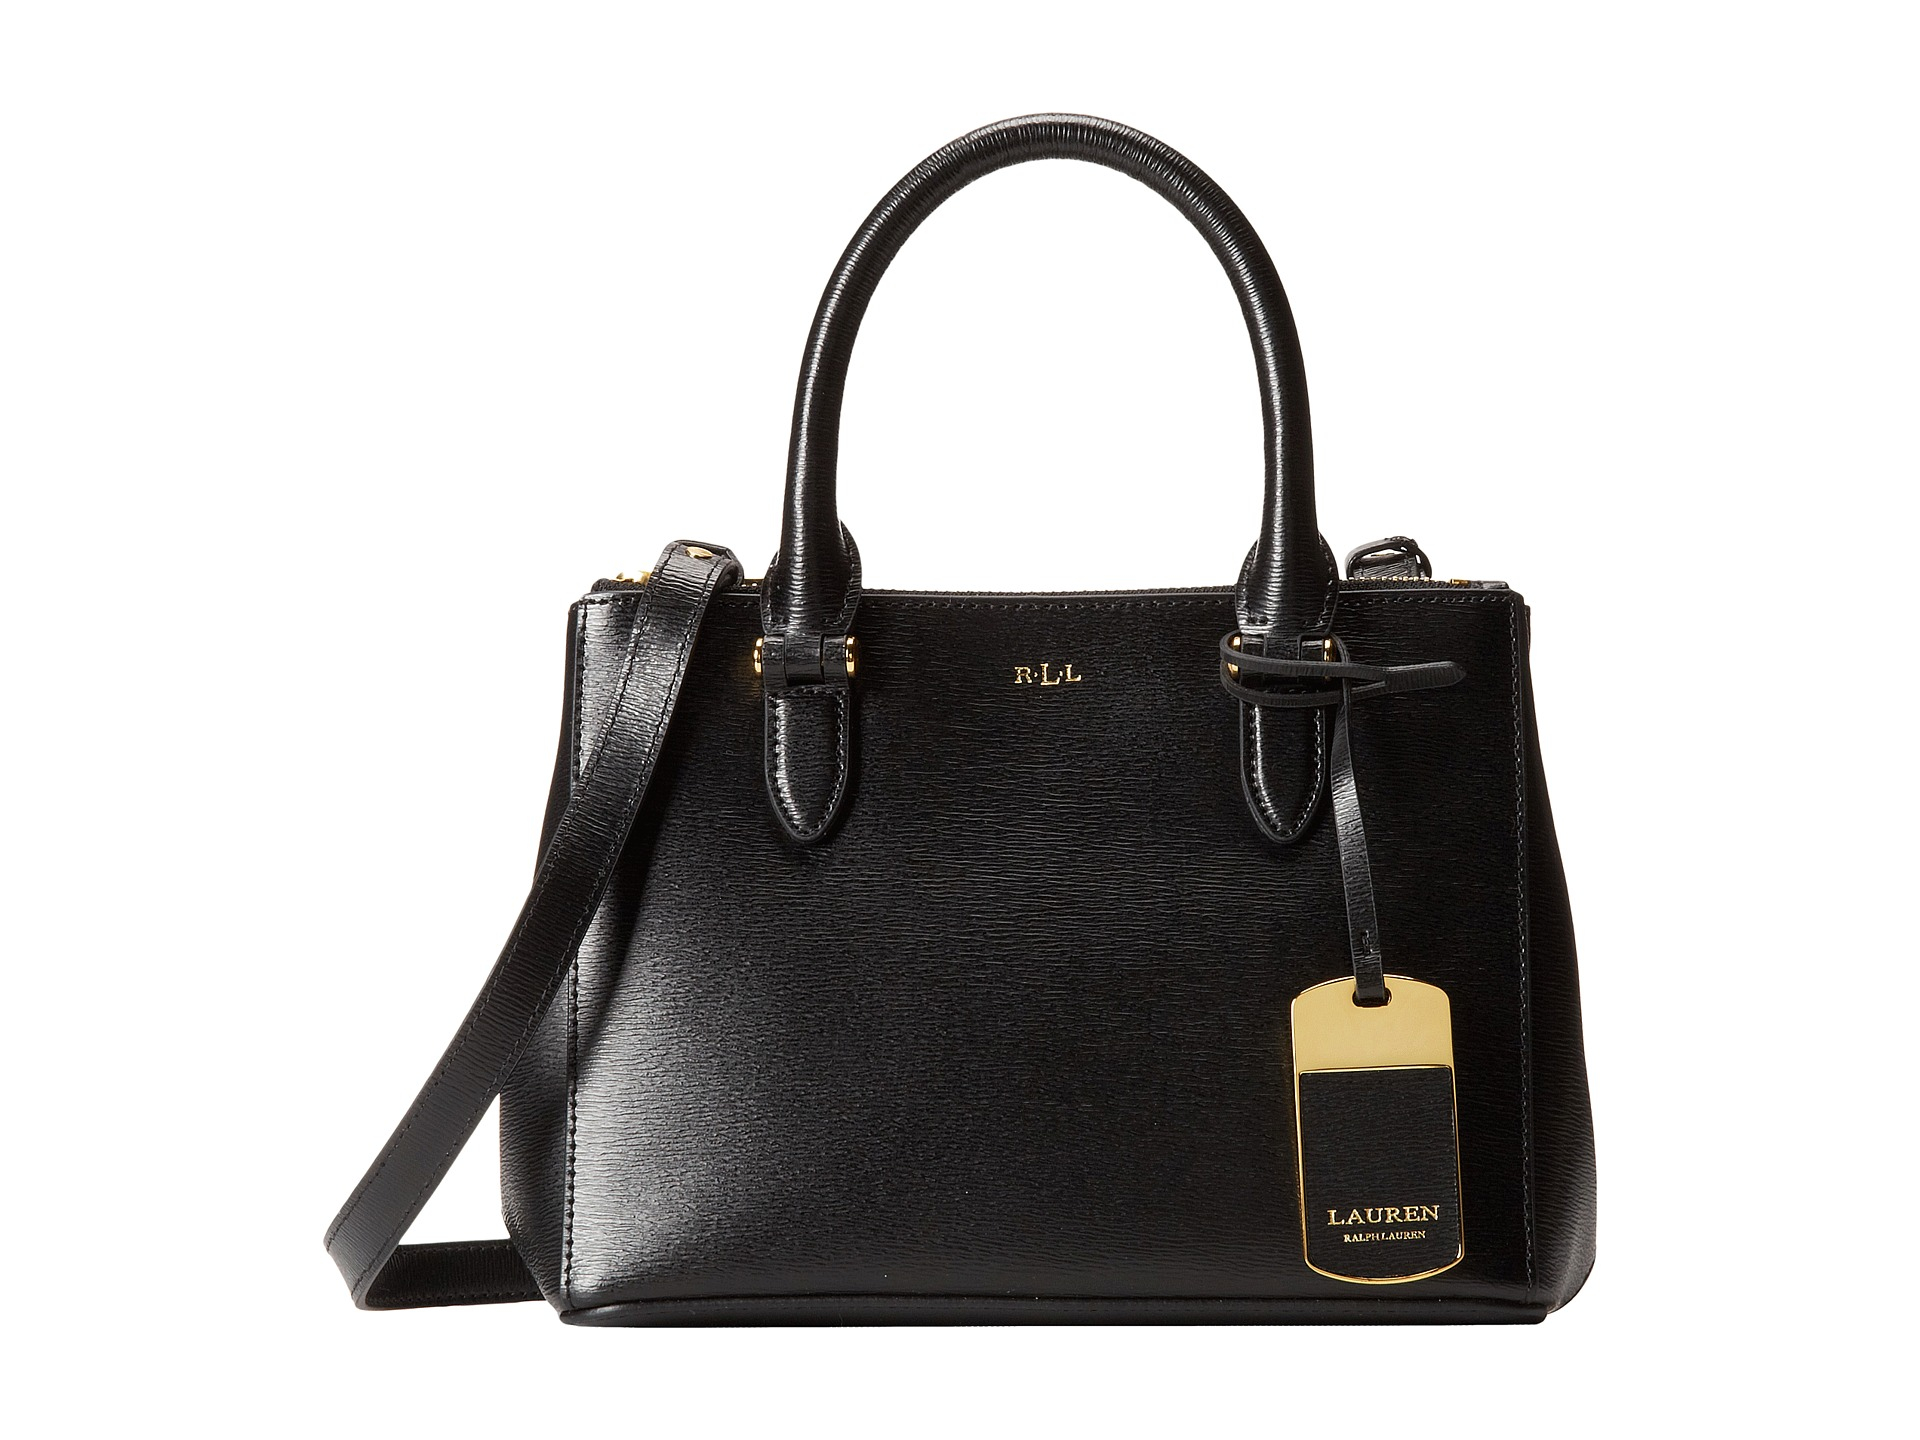 Lyst - Lauren by Ralph Lauren Newbury Mini Double Zip Satchel in Black 6f4791744e4fc